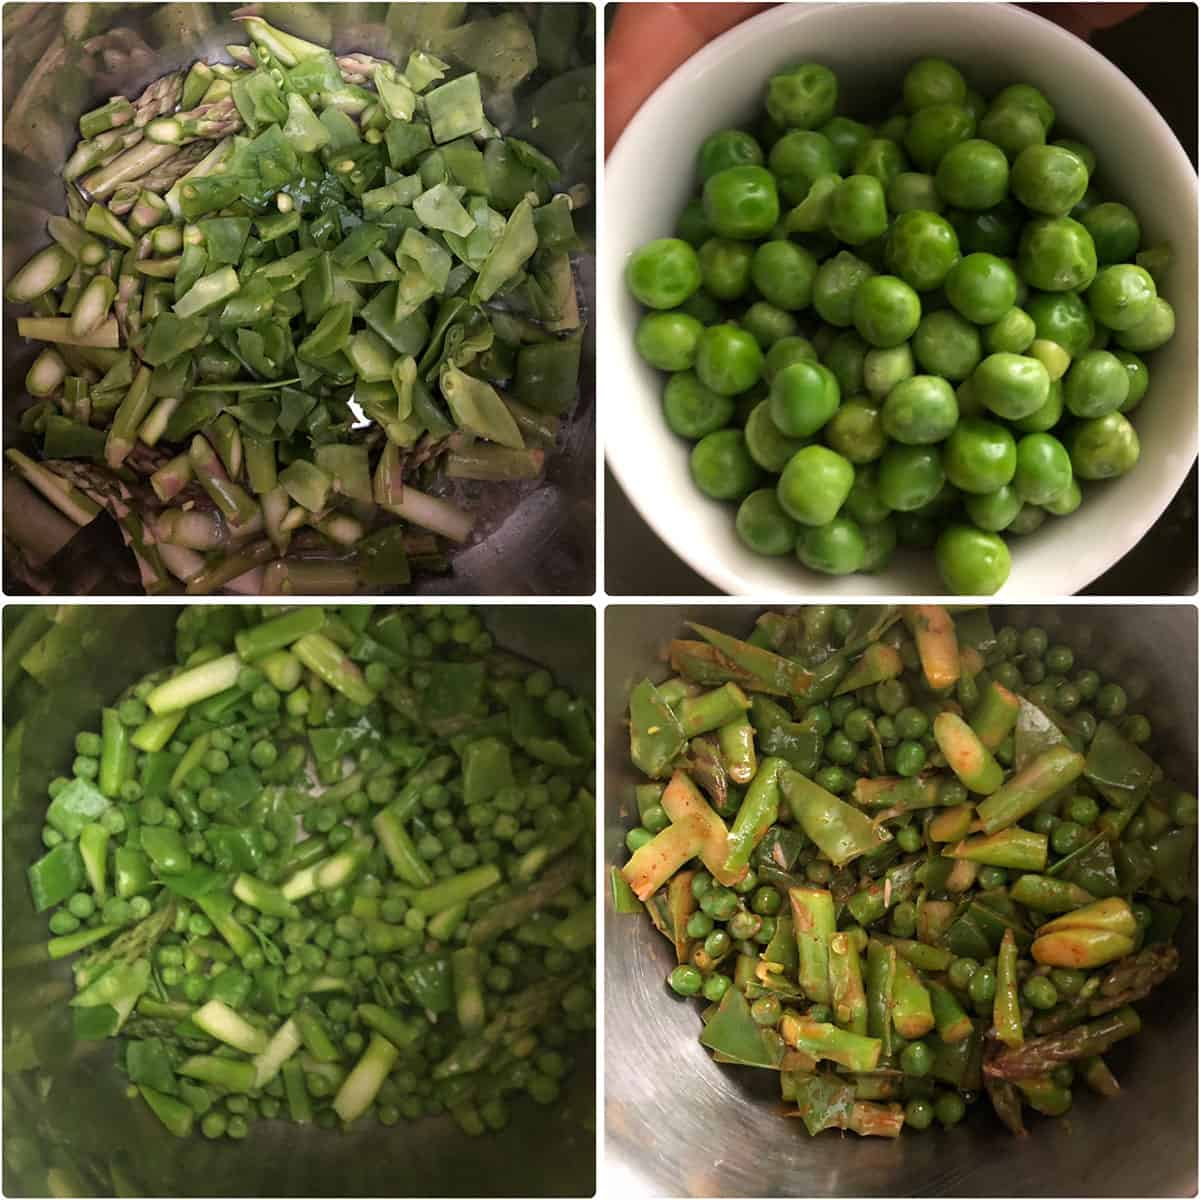 Step by step photos showing the sautéing of asparagus, snow peas and green peas until crisp tender